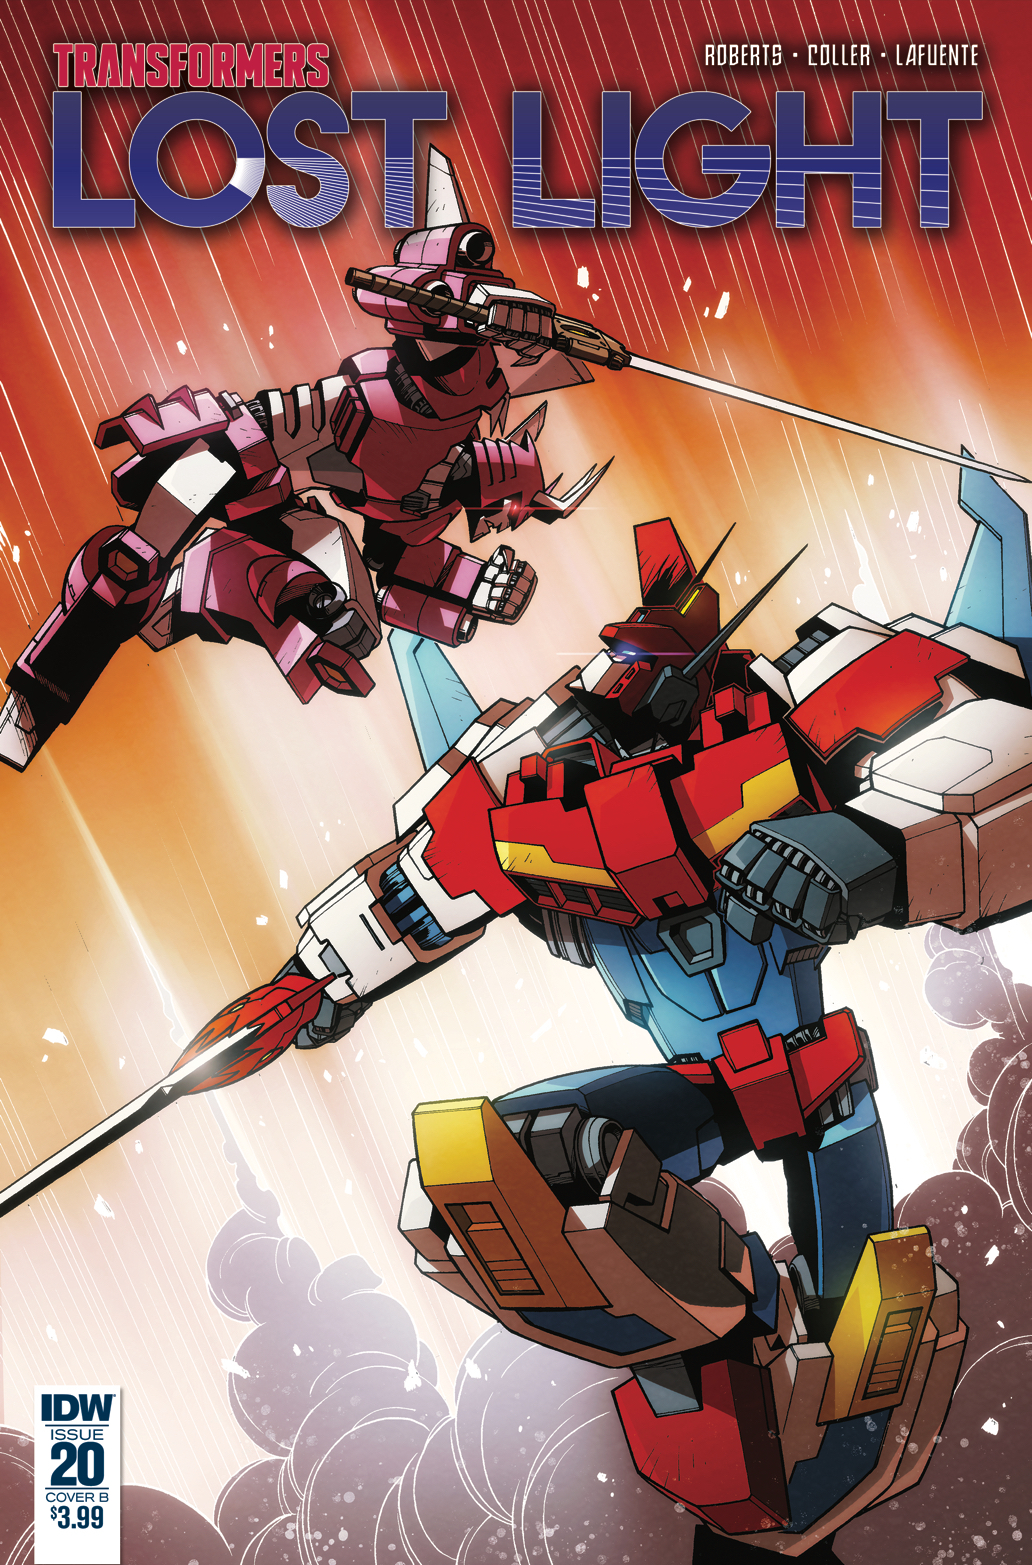 TRANSFORMERS LOST LIGHT #20 CVR B LAWRENCE